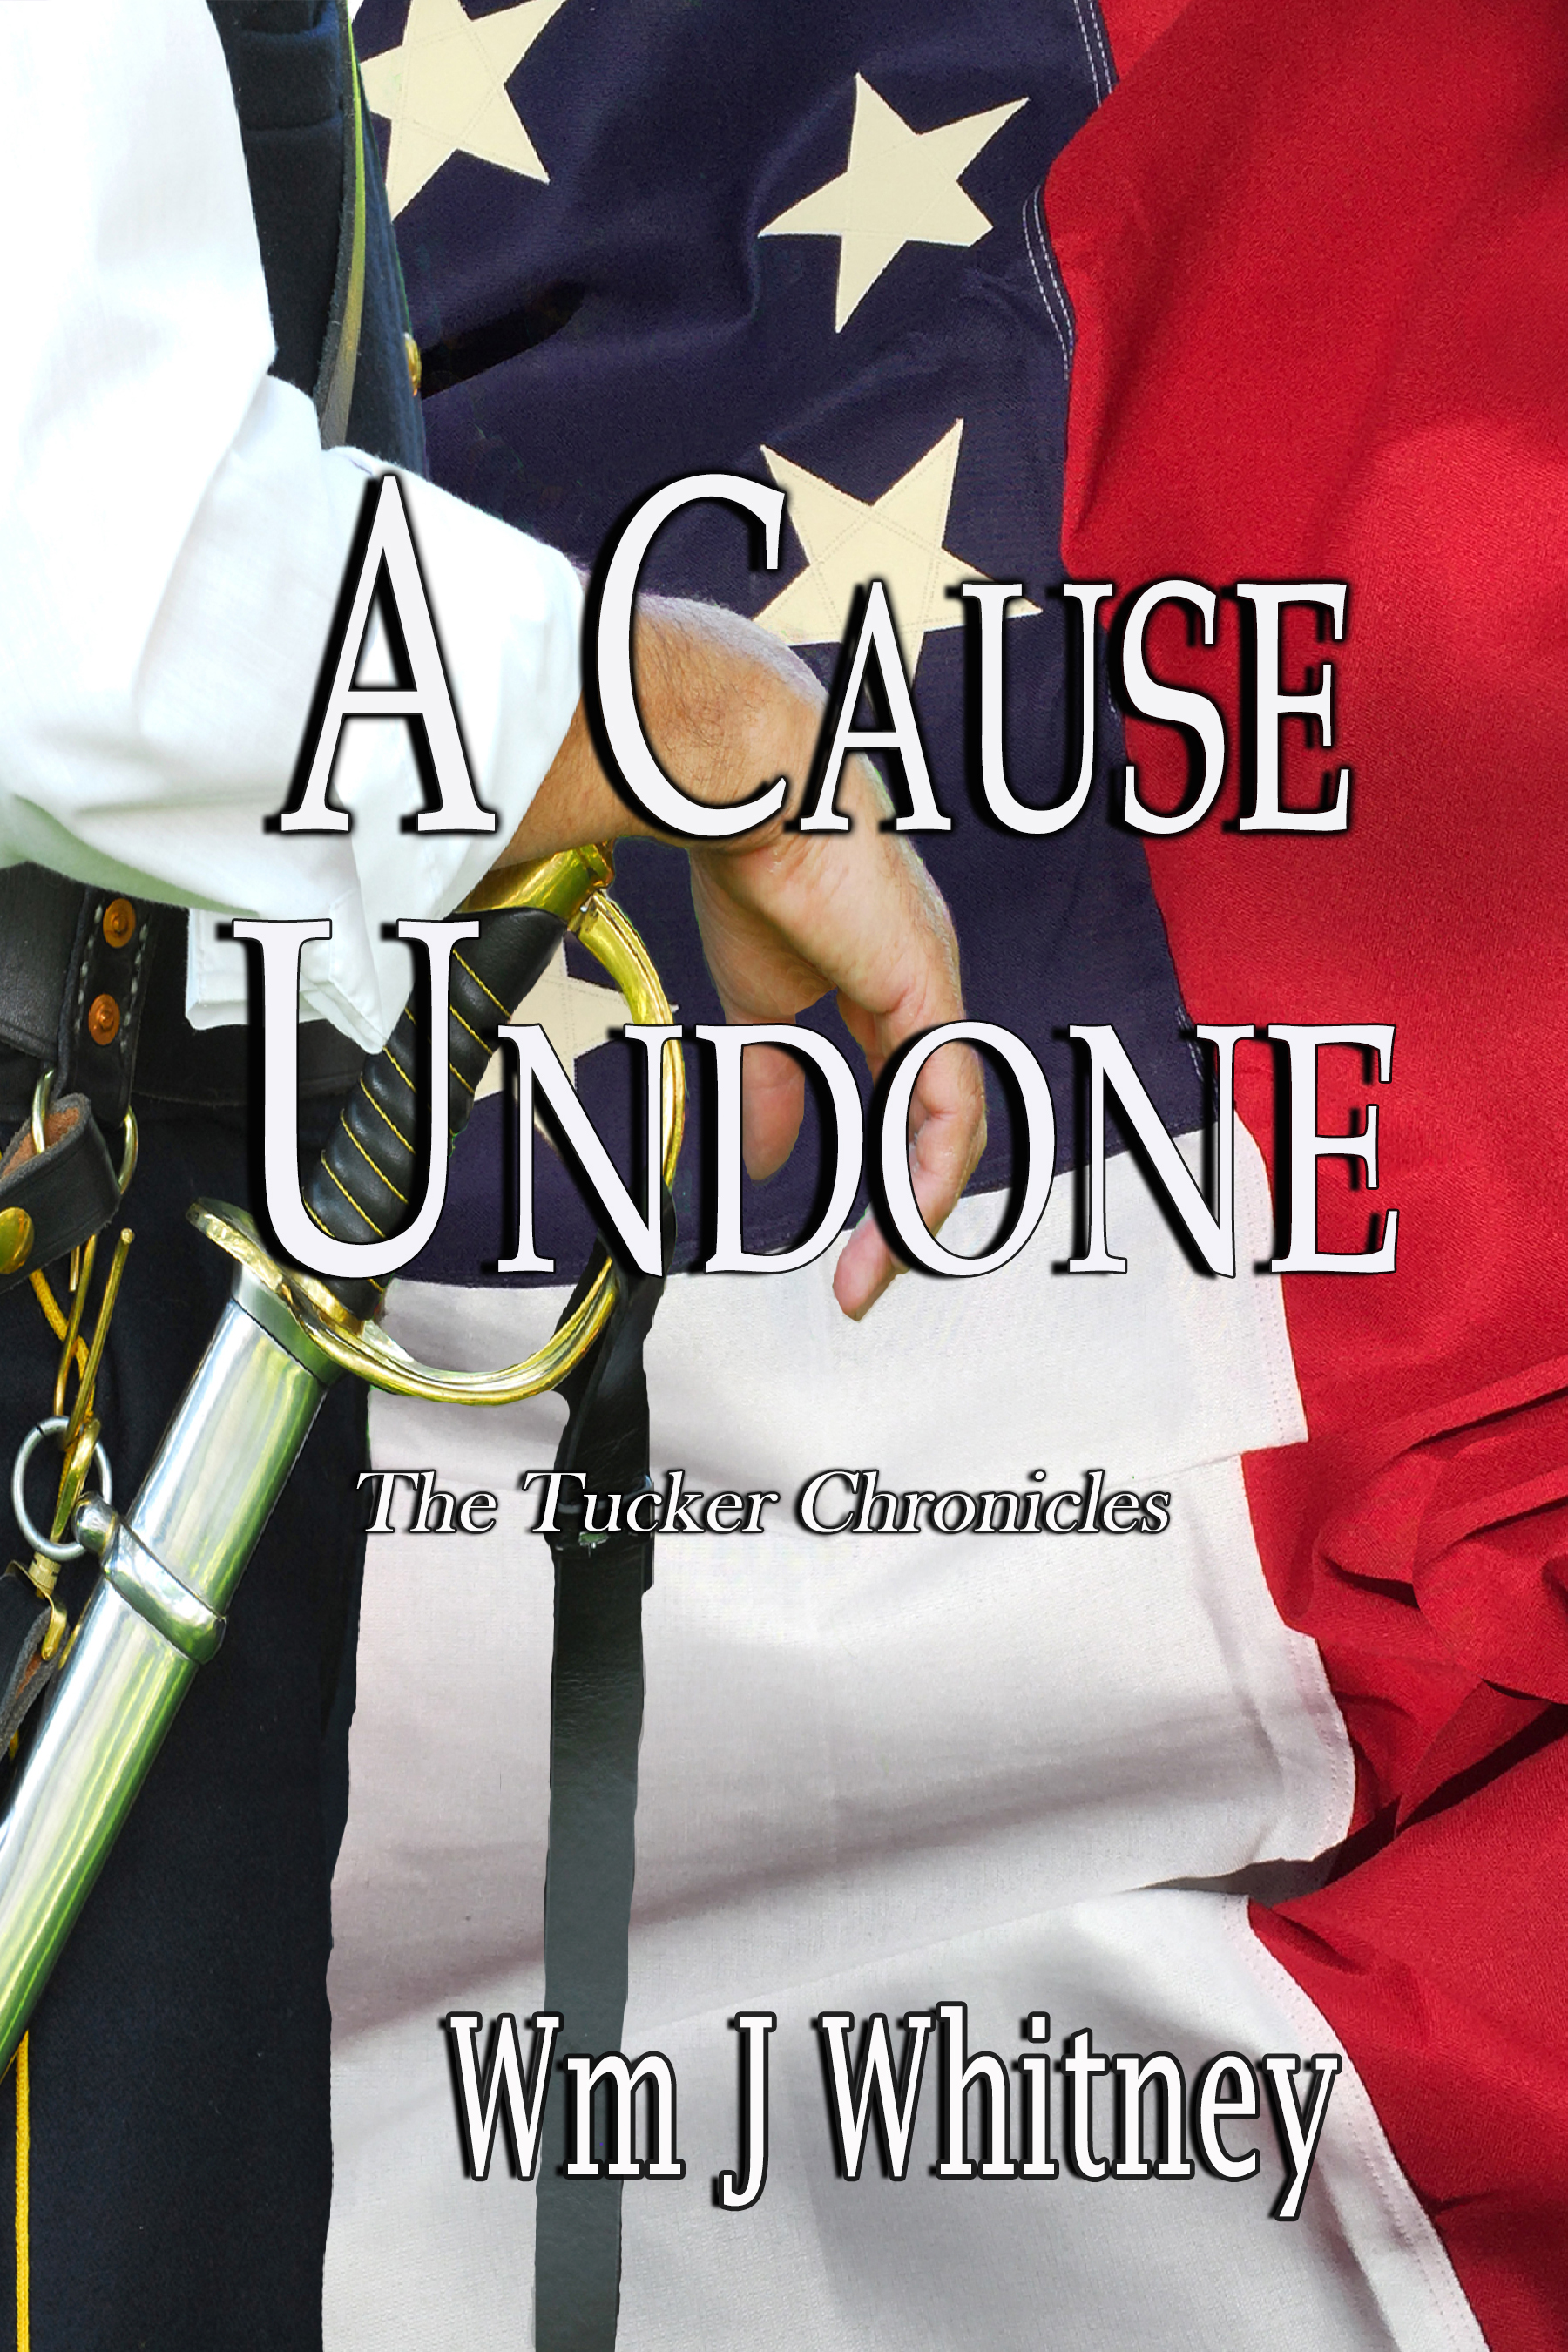 cause undone ebook may 22 18